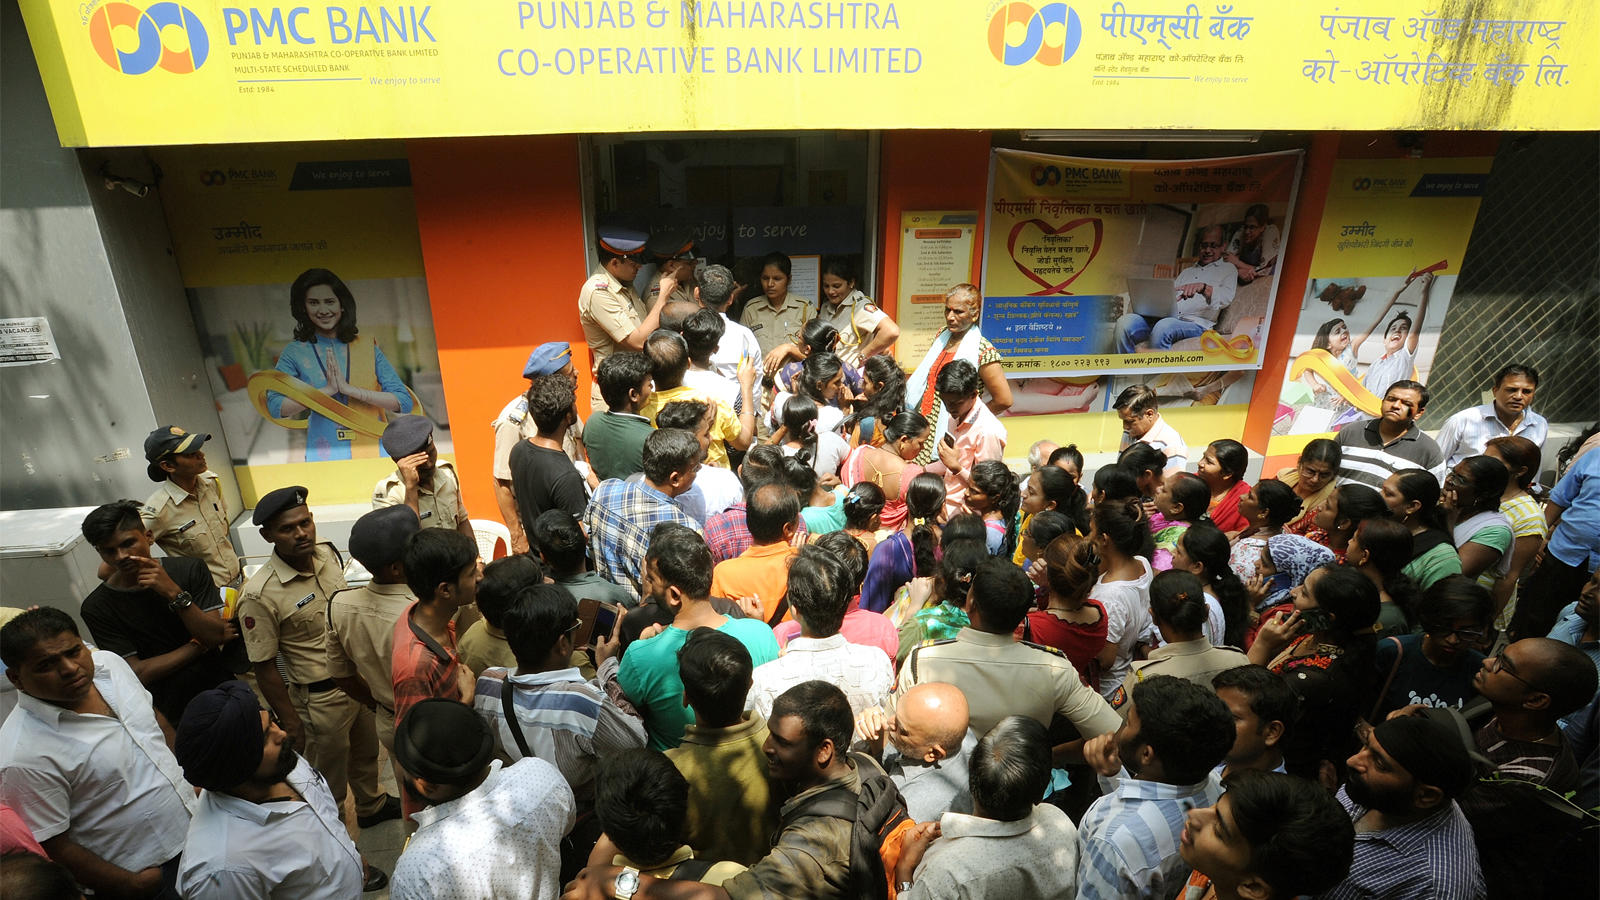 rbi-hikes-withdrawal-limit-for-pmc-bank-customers-to-rs-40000